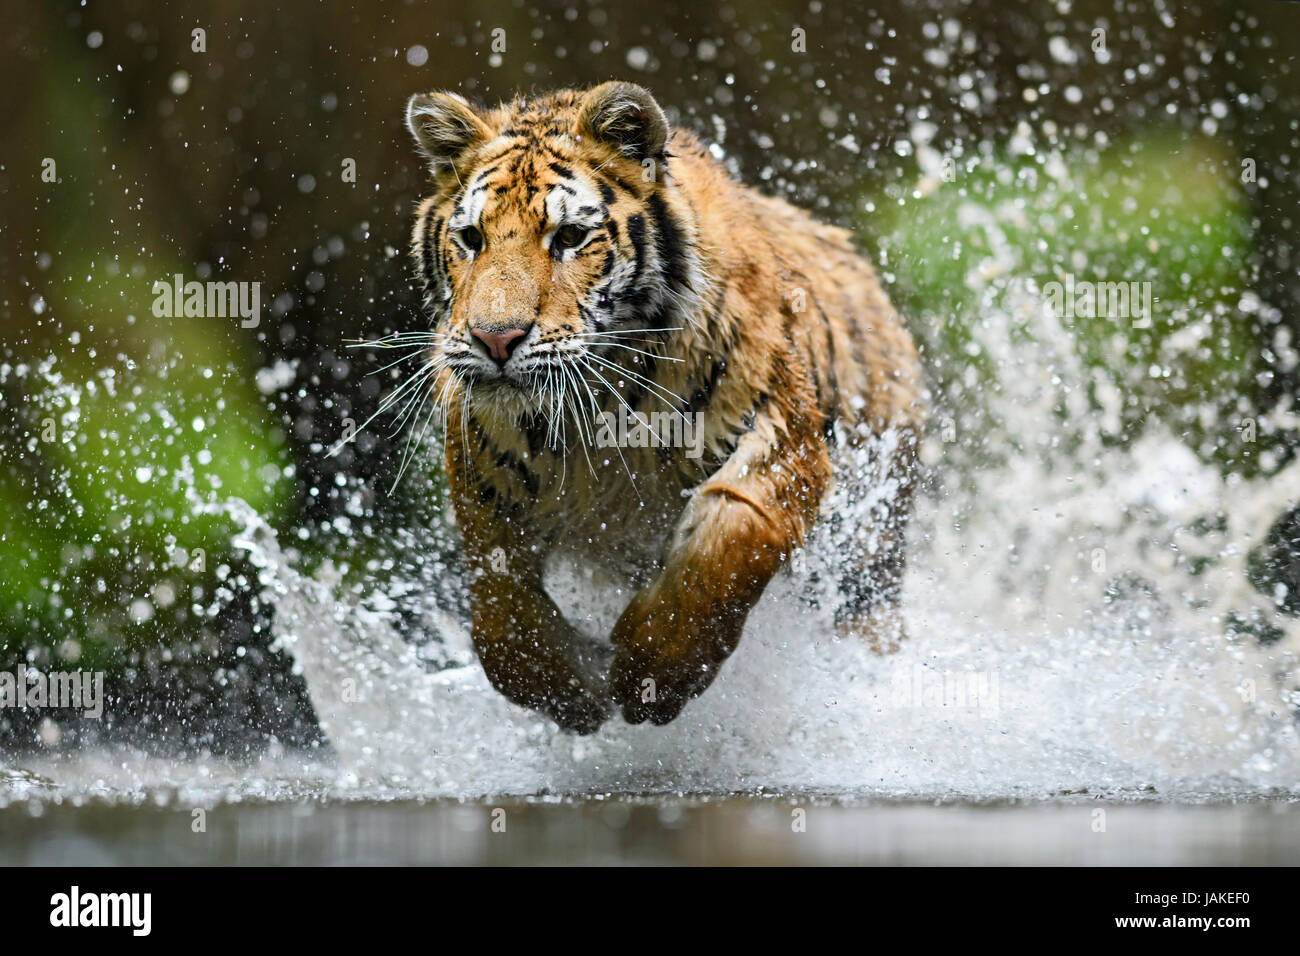 Siberian tiger hunting in the river - Stock Image